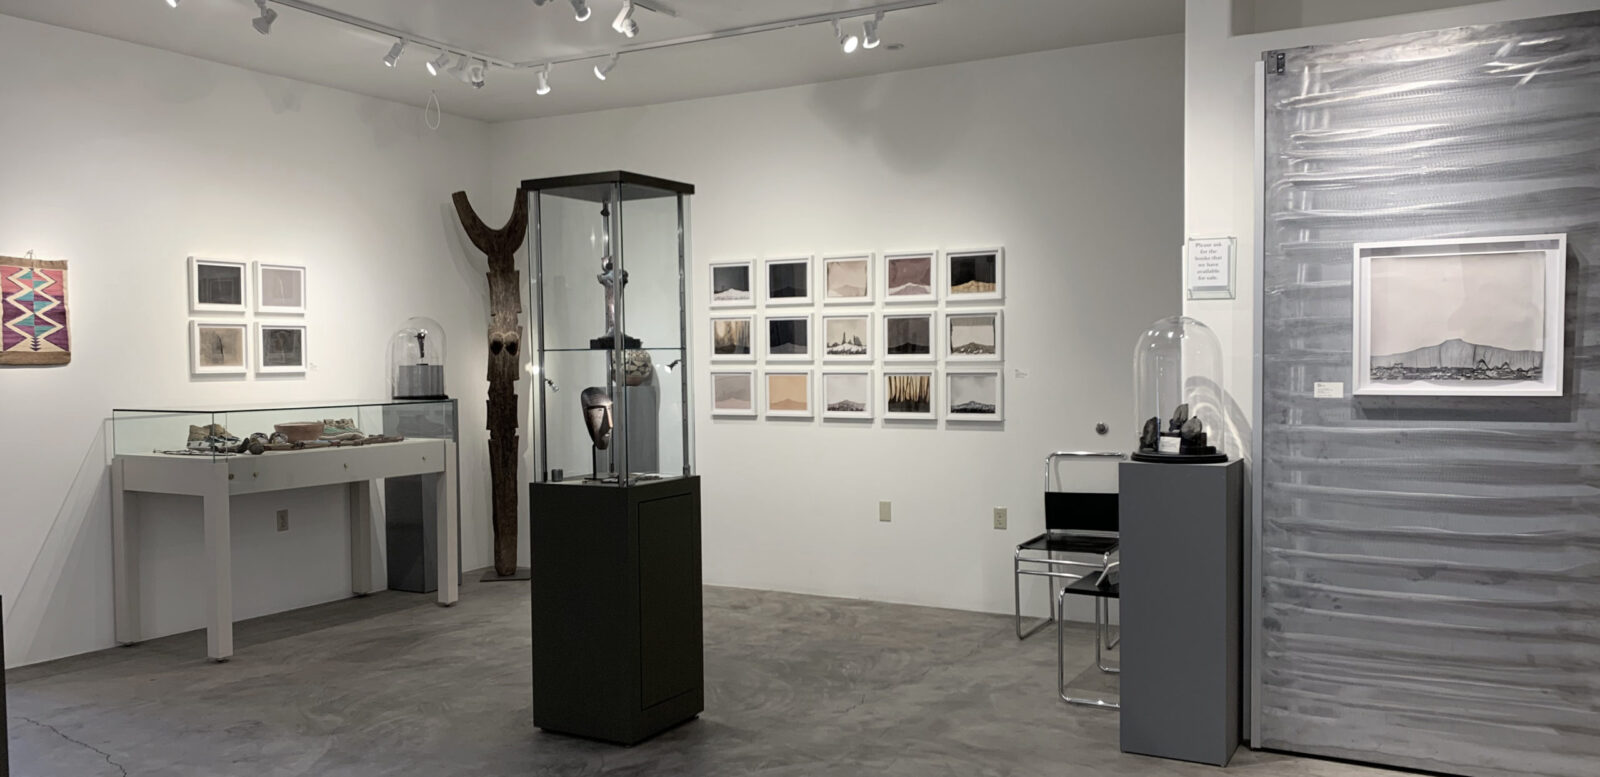 Installation image of Caitlyn Soldan's gallery exhibition